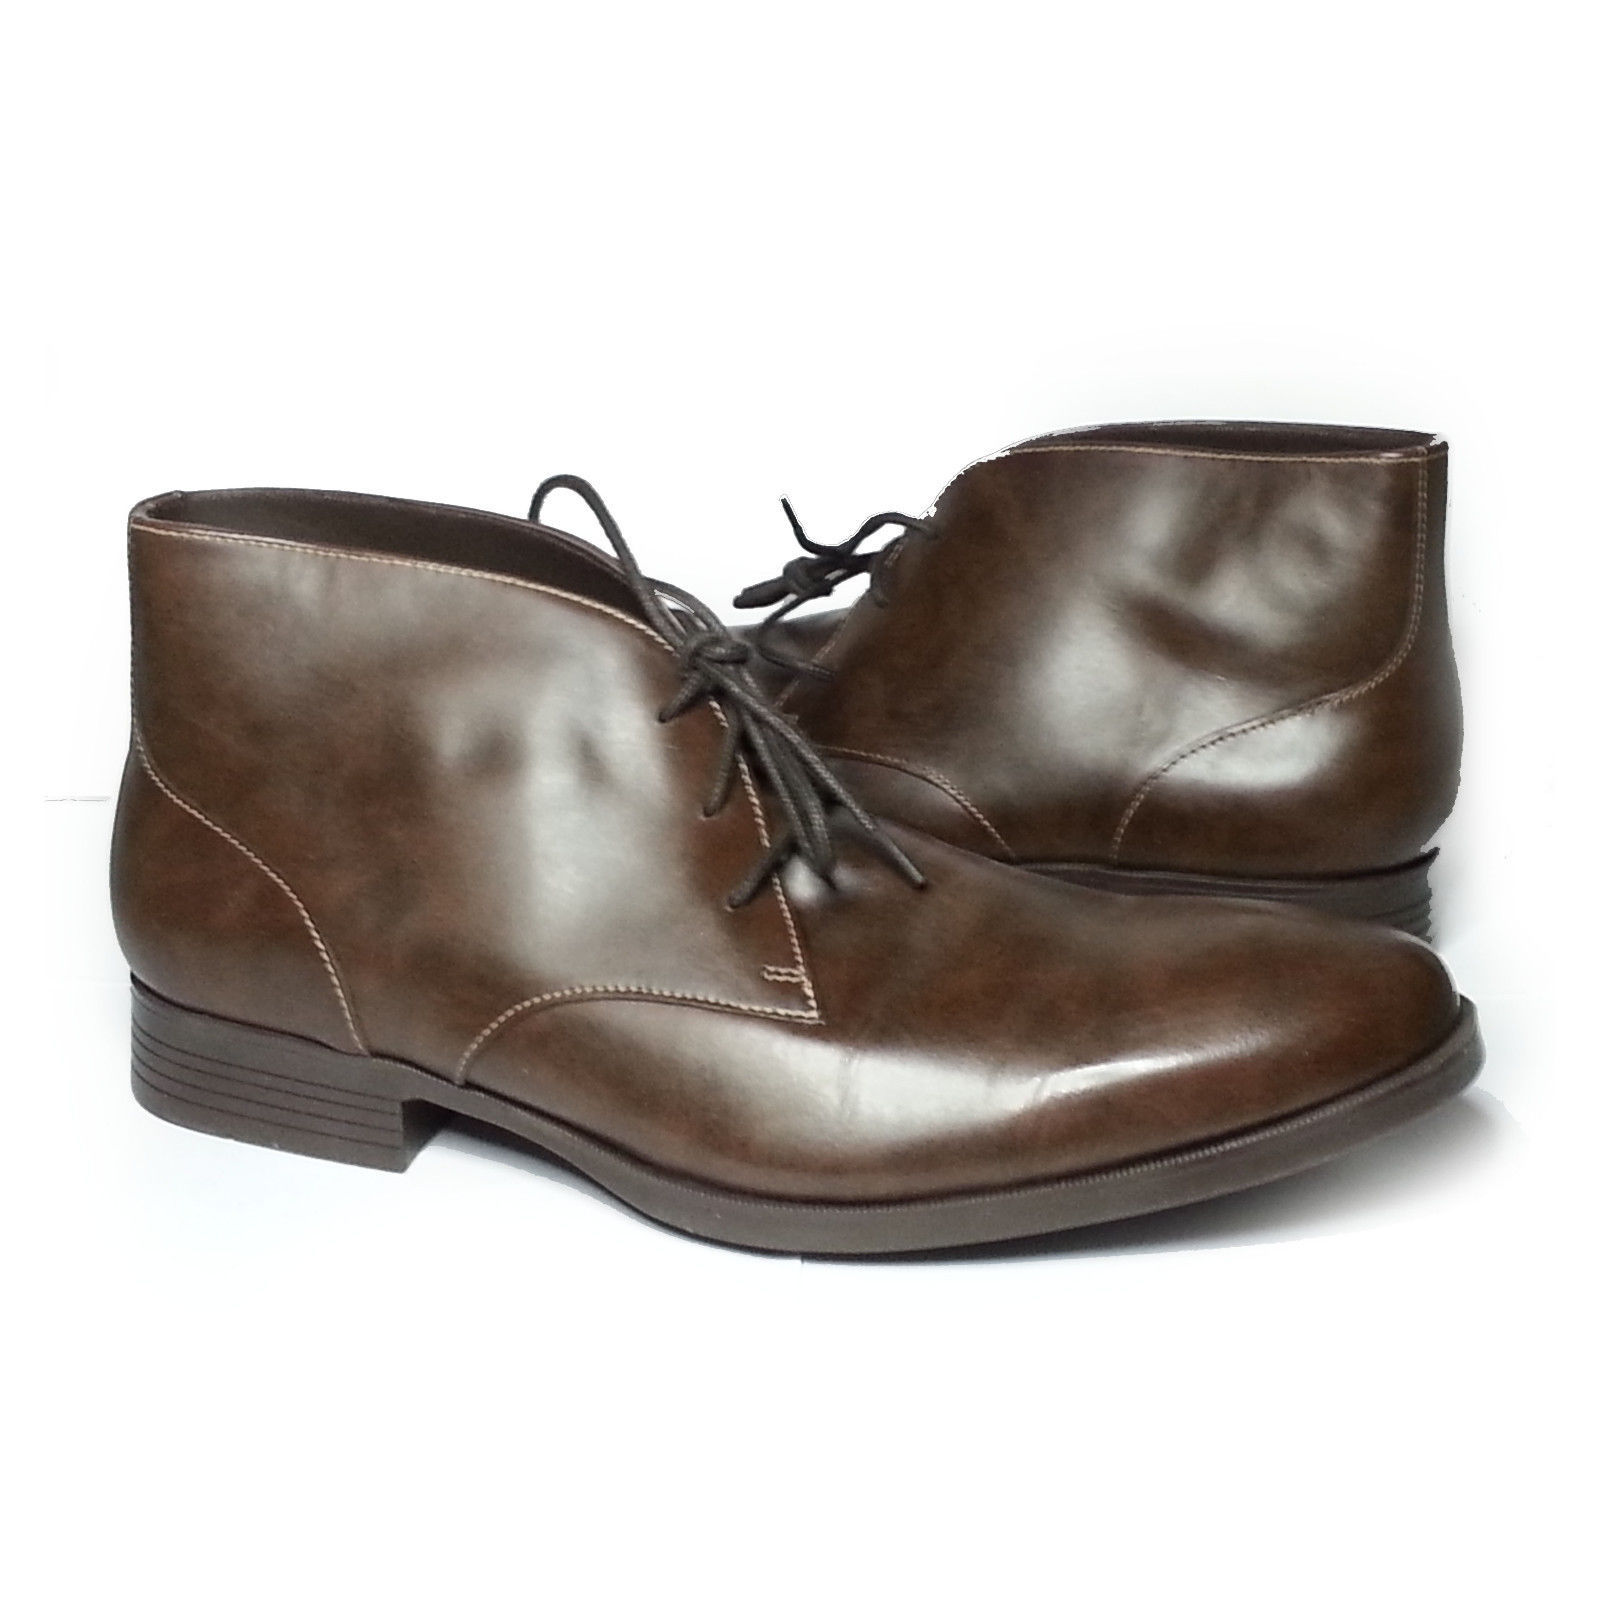 Cole Haan Men Size 10.5 Brown Leather Copley Chukka Boots Made in India New Box